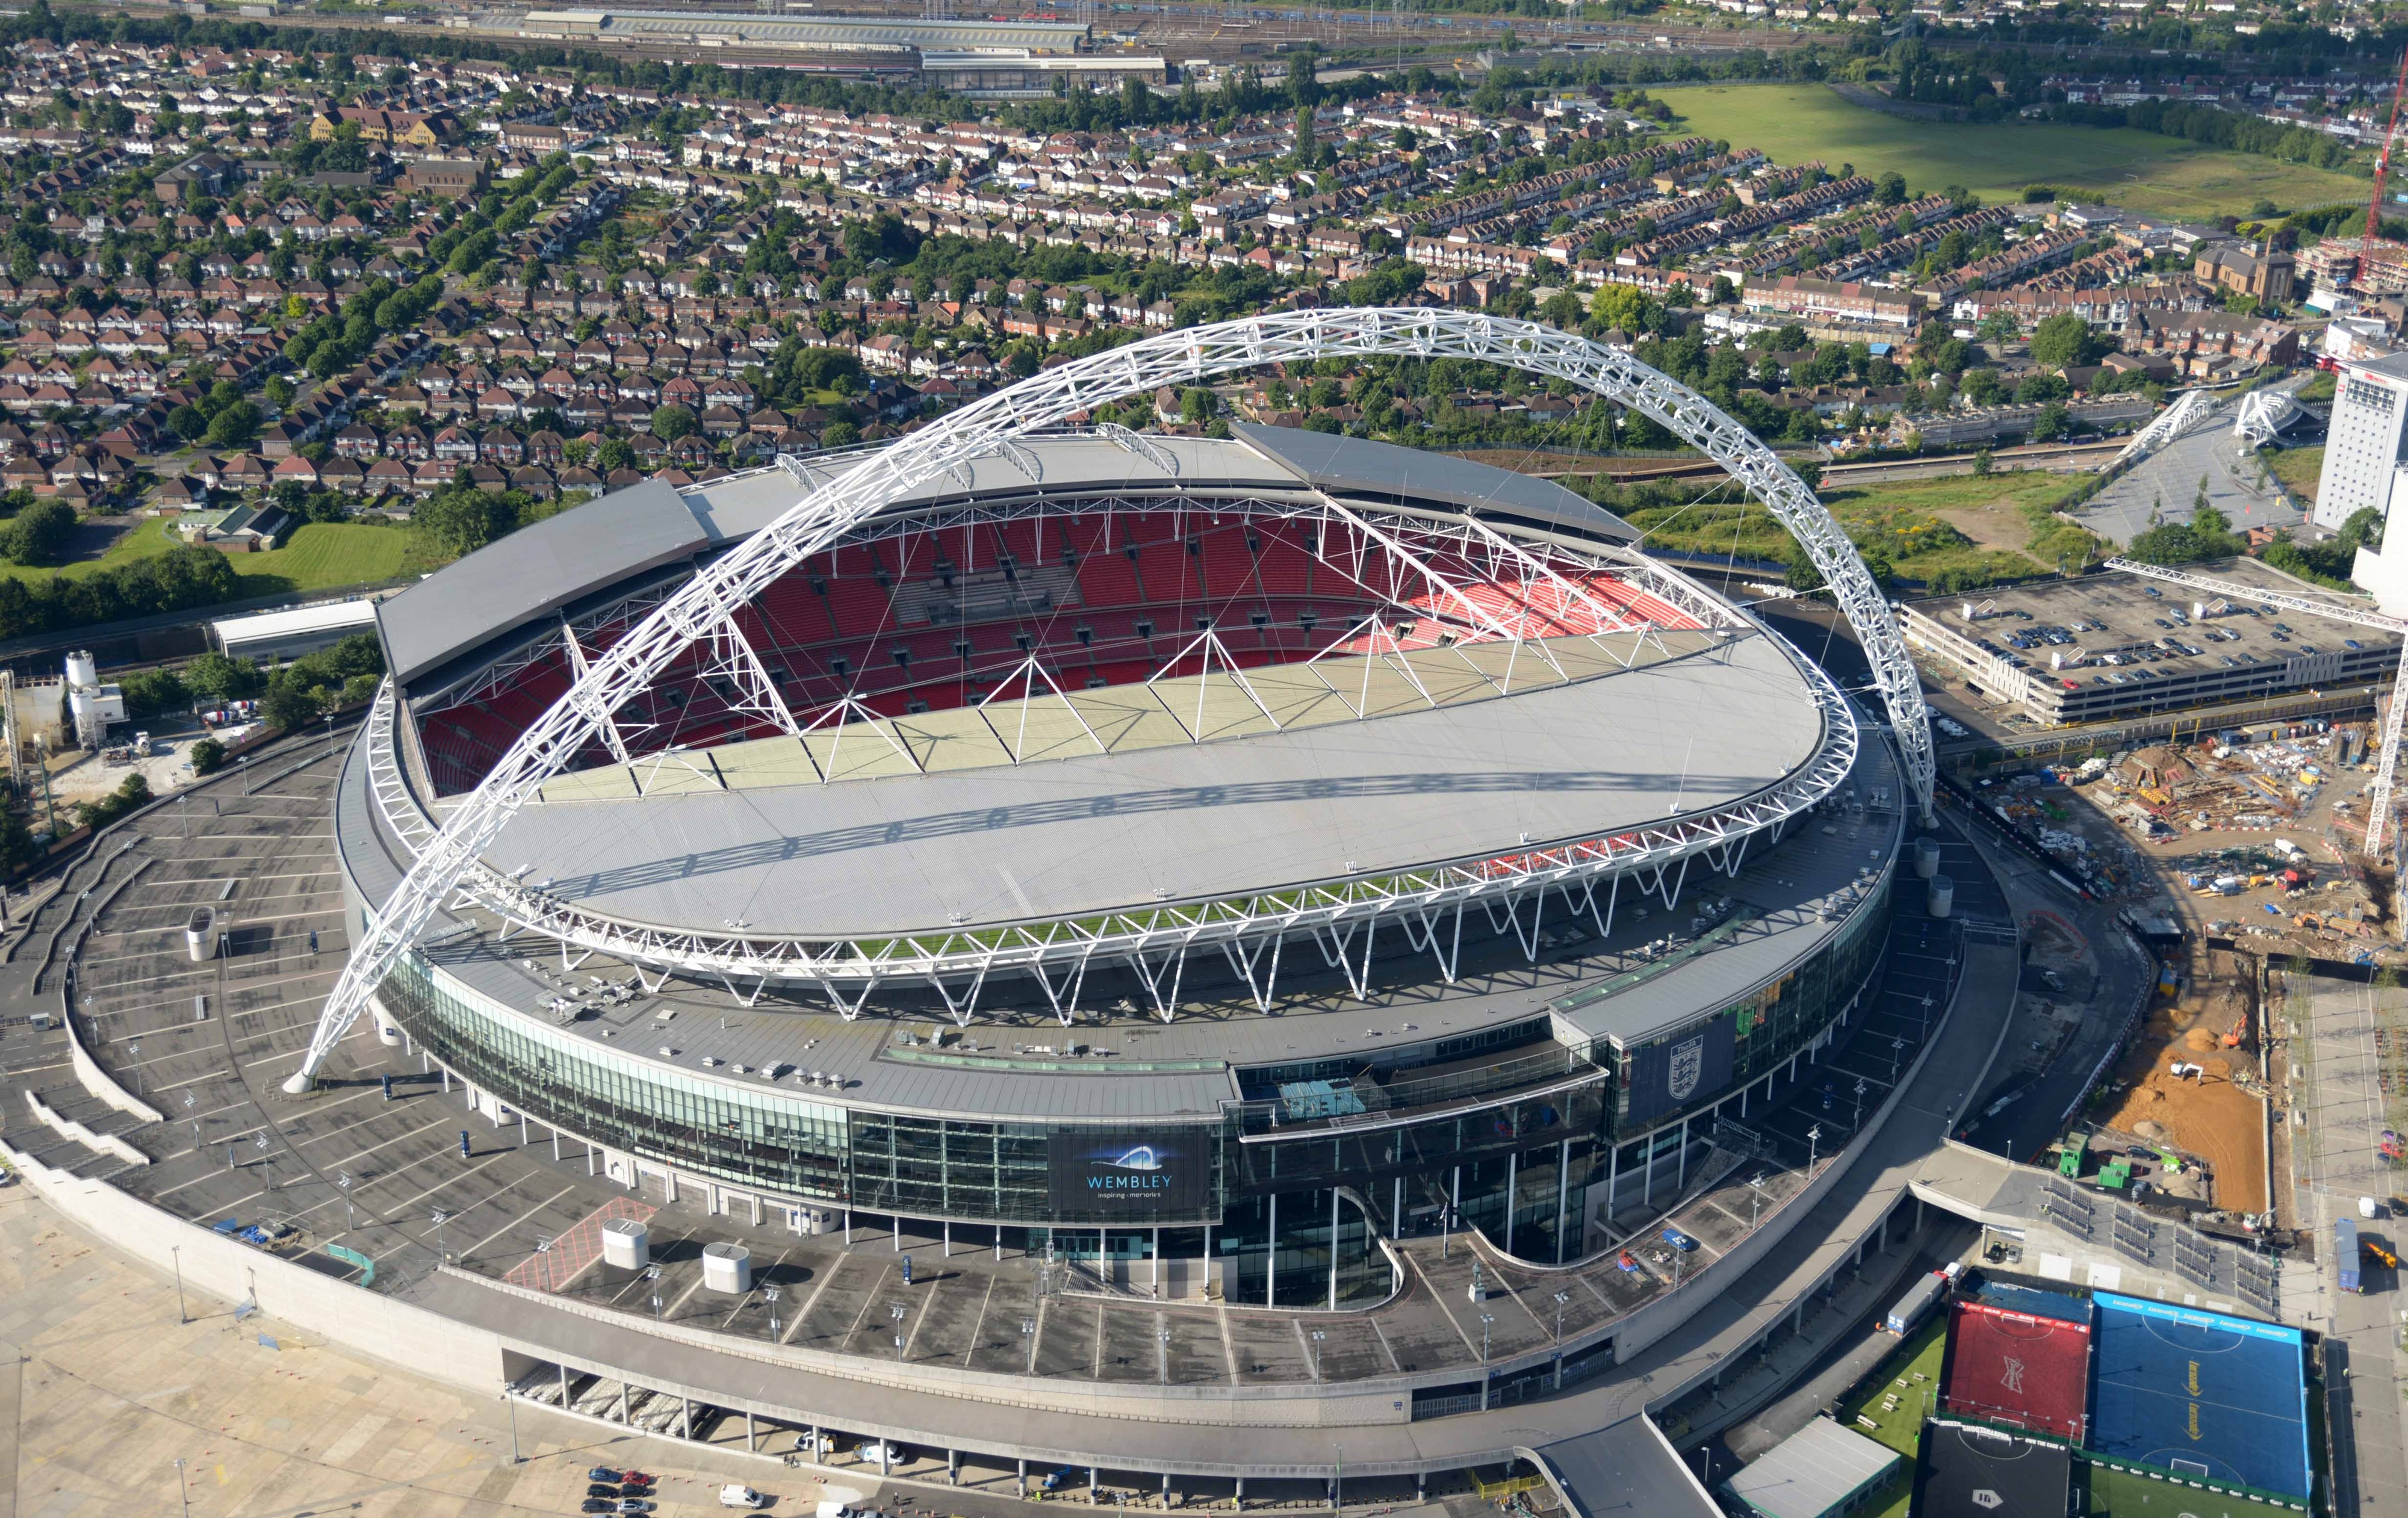 Jul 12, 2012; London, UNITED KINGDOM; Aerial view of Wembley Stadium. After today, just eight teams will be left in the race to get here for the men's soccer gold medal game. Mandatory Credit: Kirby Lee/Image of Sport-US PRESSWIRE